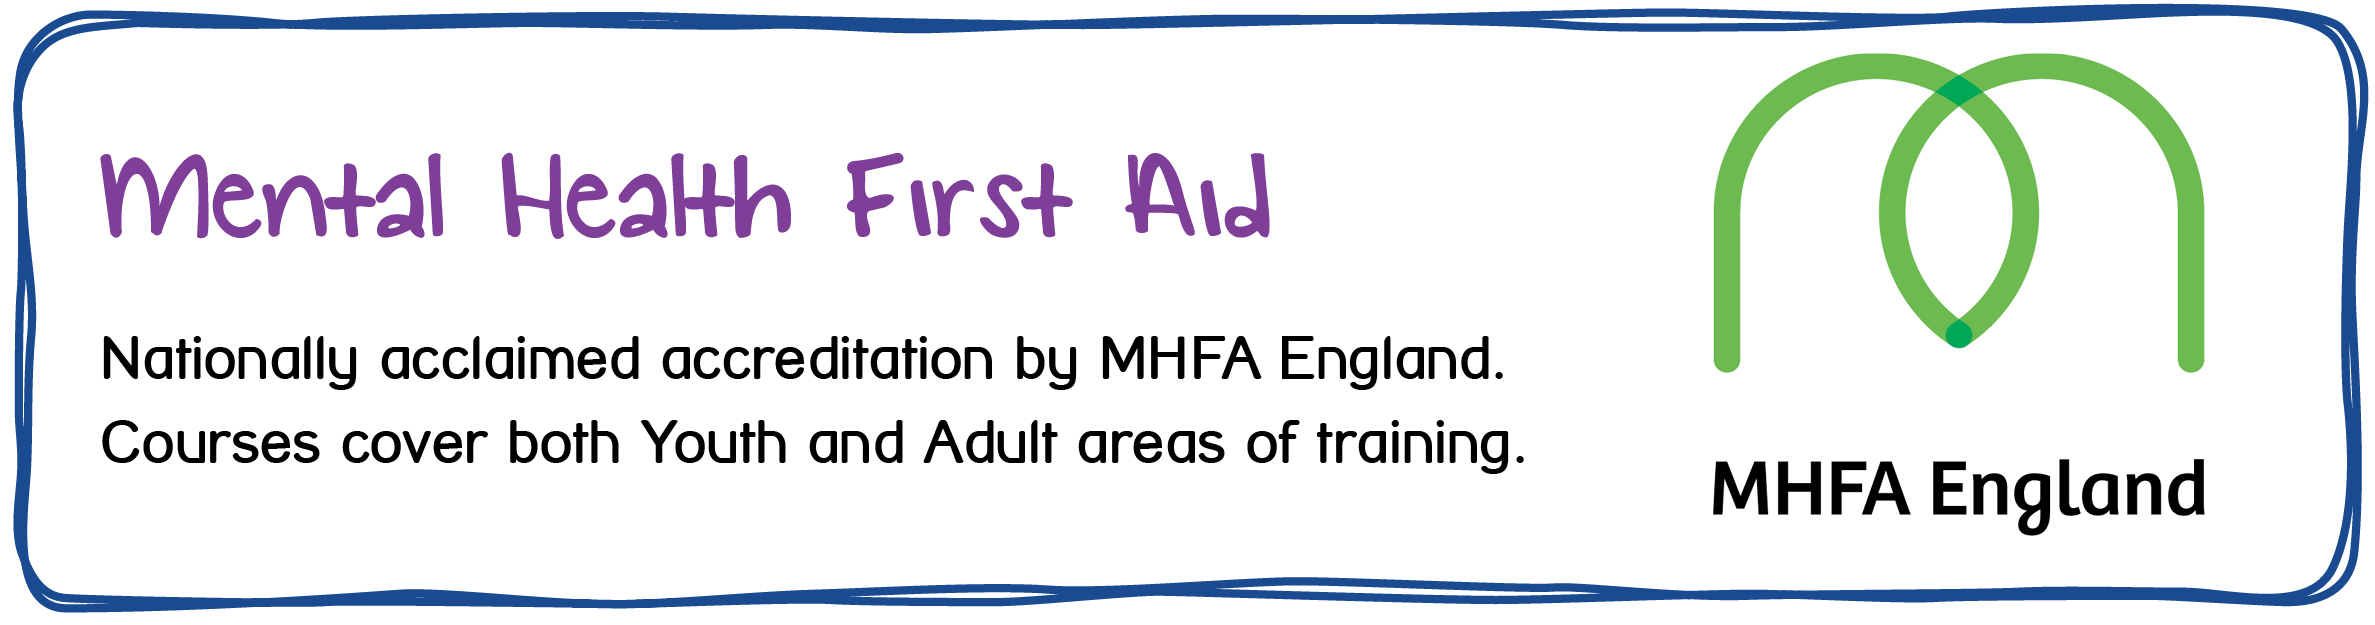 MHFA - Mental Health First Aid is a nationally acclaimed accreditation by MHFA England. Courses cover both Youth and Adult areas of training.